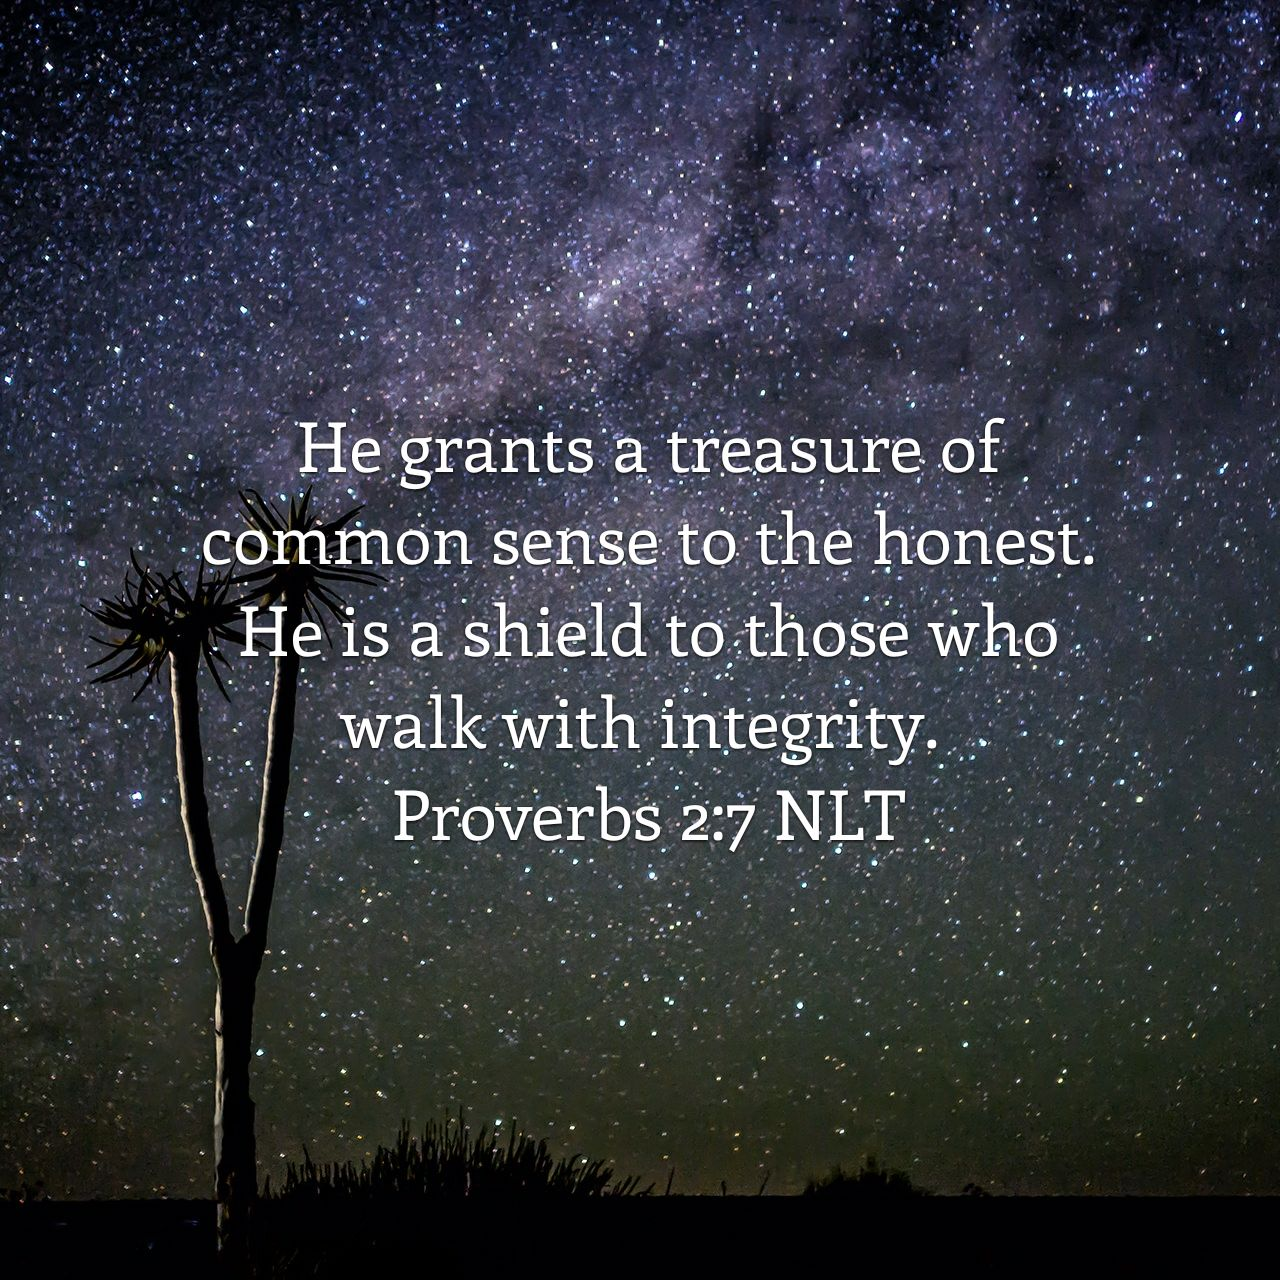 He grants a treasure of common sense to the honest. He is a shield to those who walk with integrity. - Proverbs 2:7 NLT